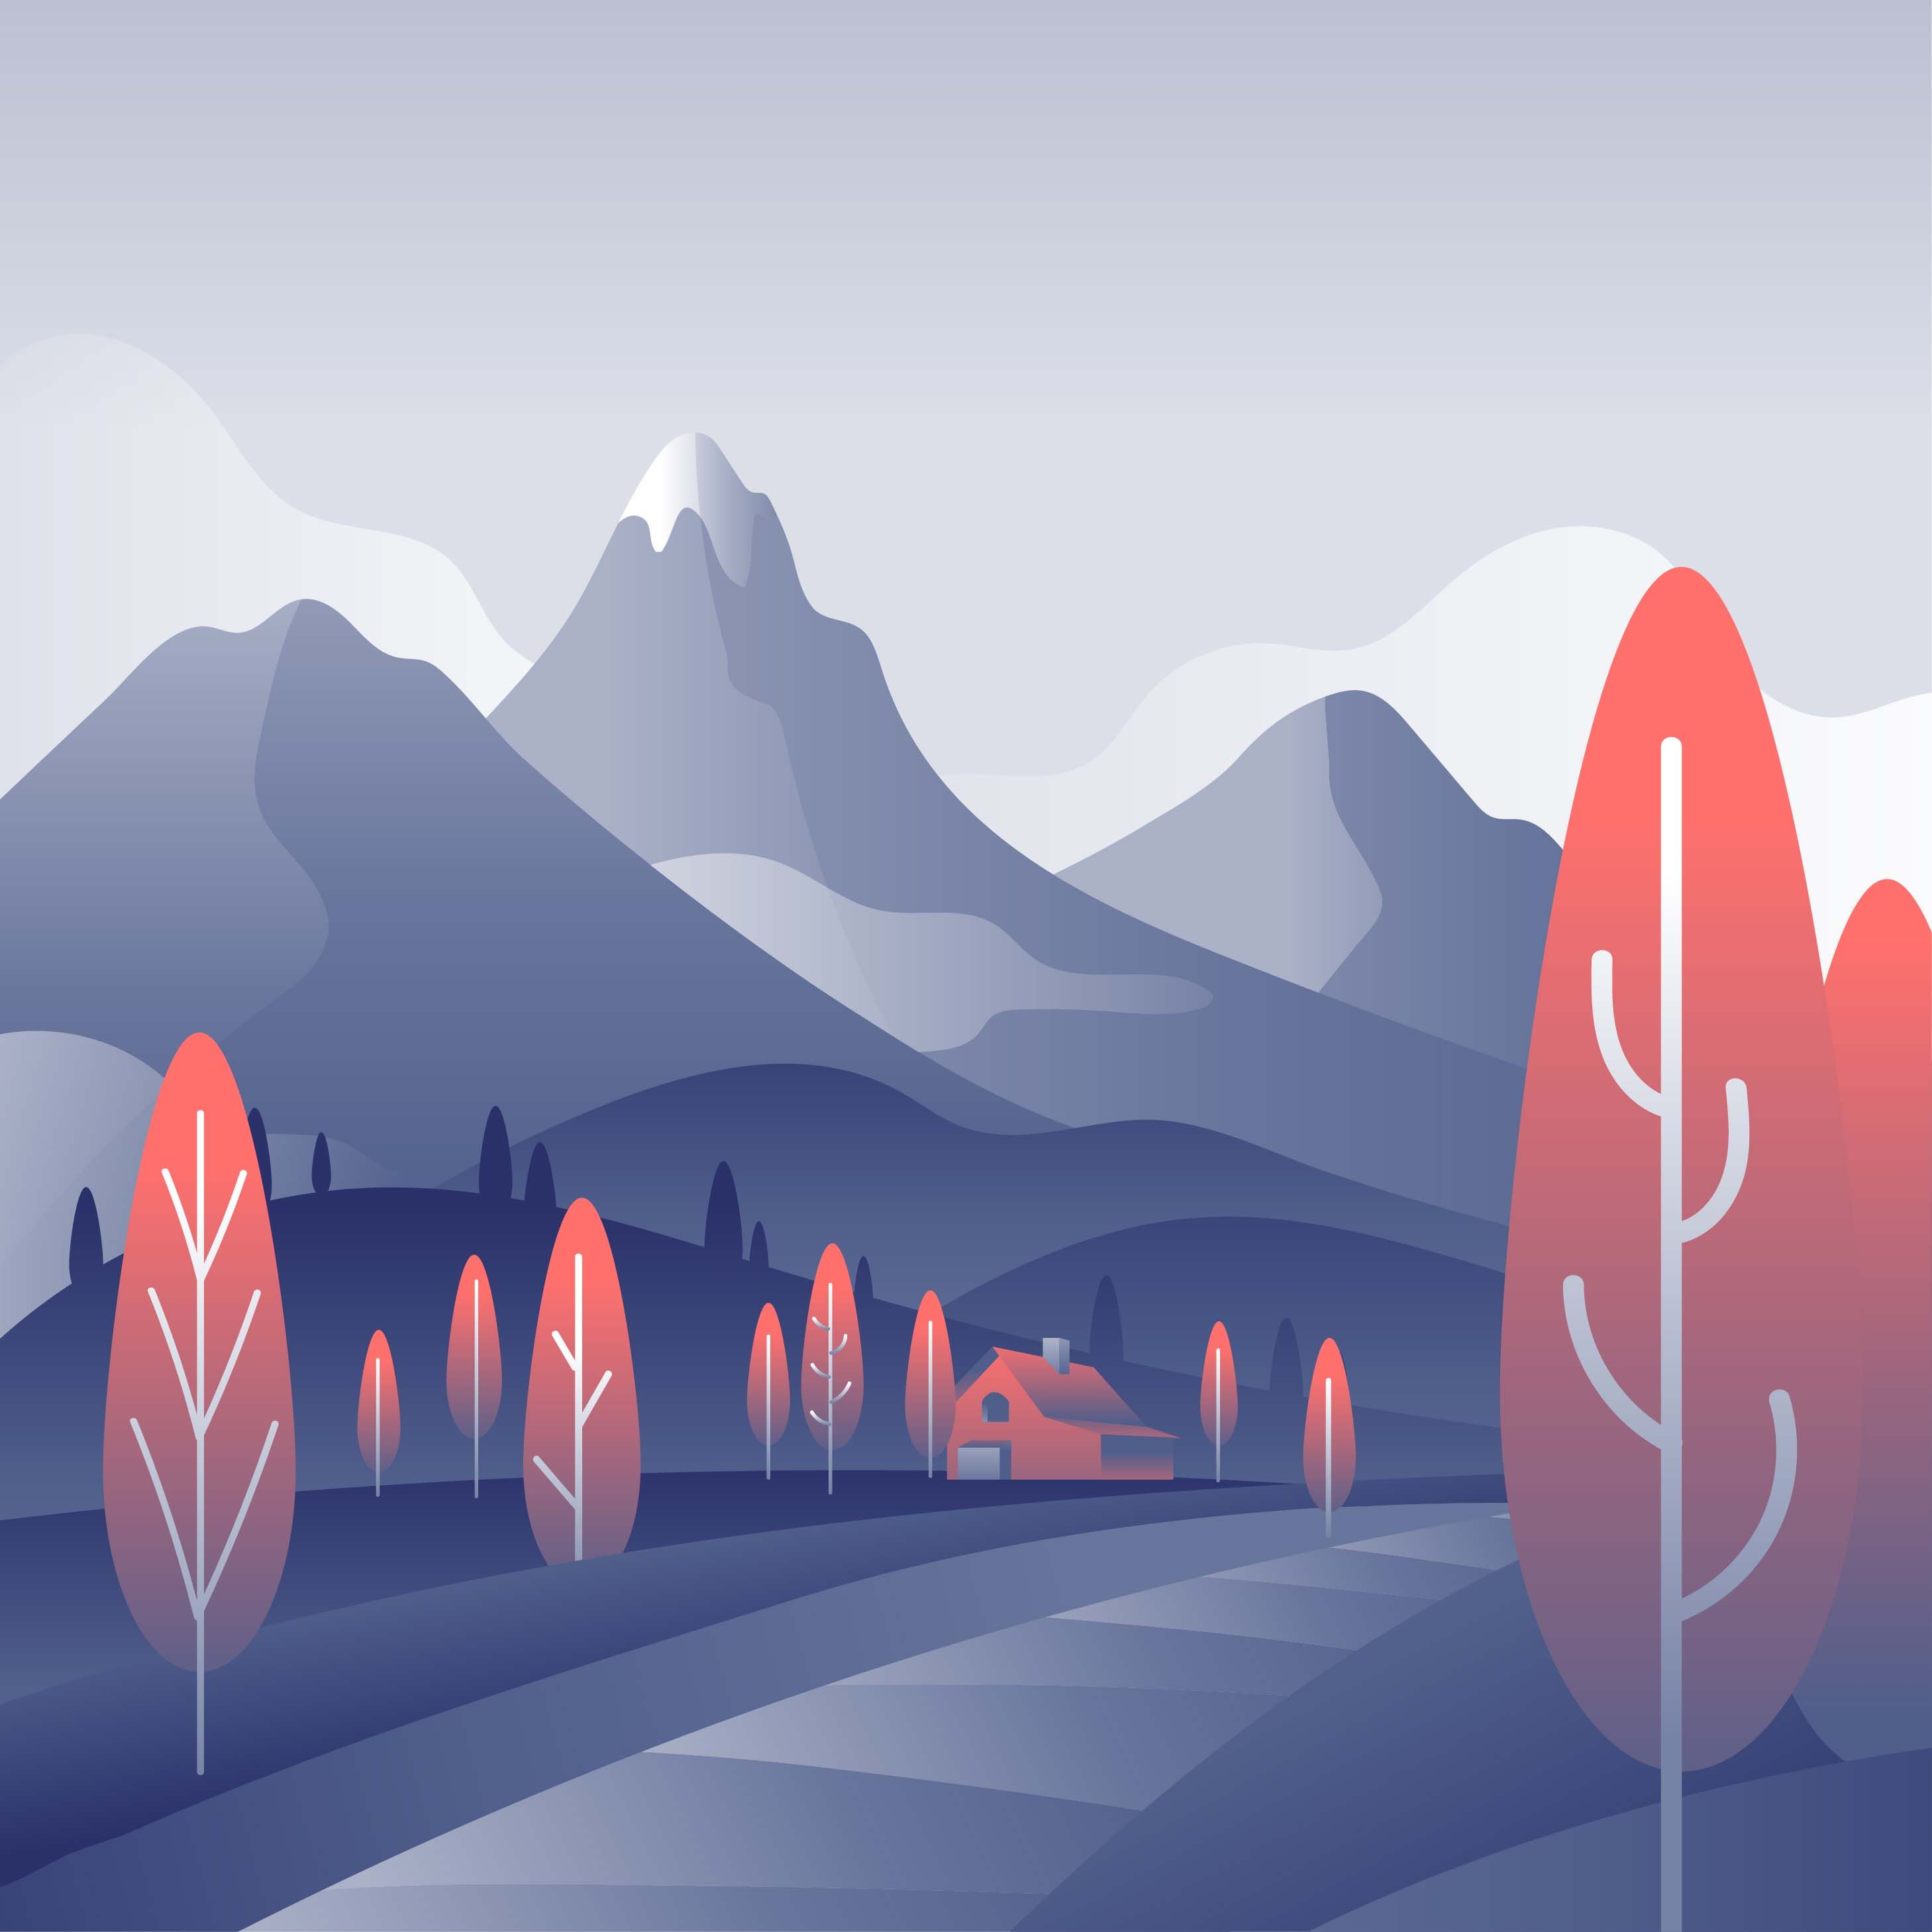 Mountain Landscape First Person Vector Choose From Thousands Of Free Vectors Clip Art Designs Icons An Landscape Illustration Mountain Landscape Vector Art